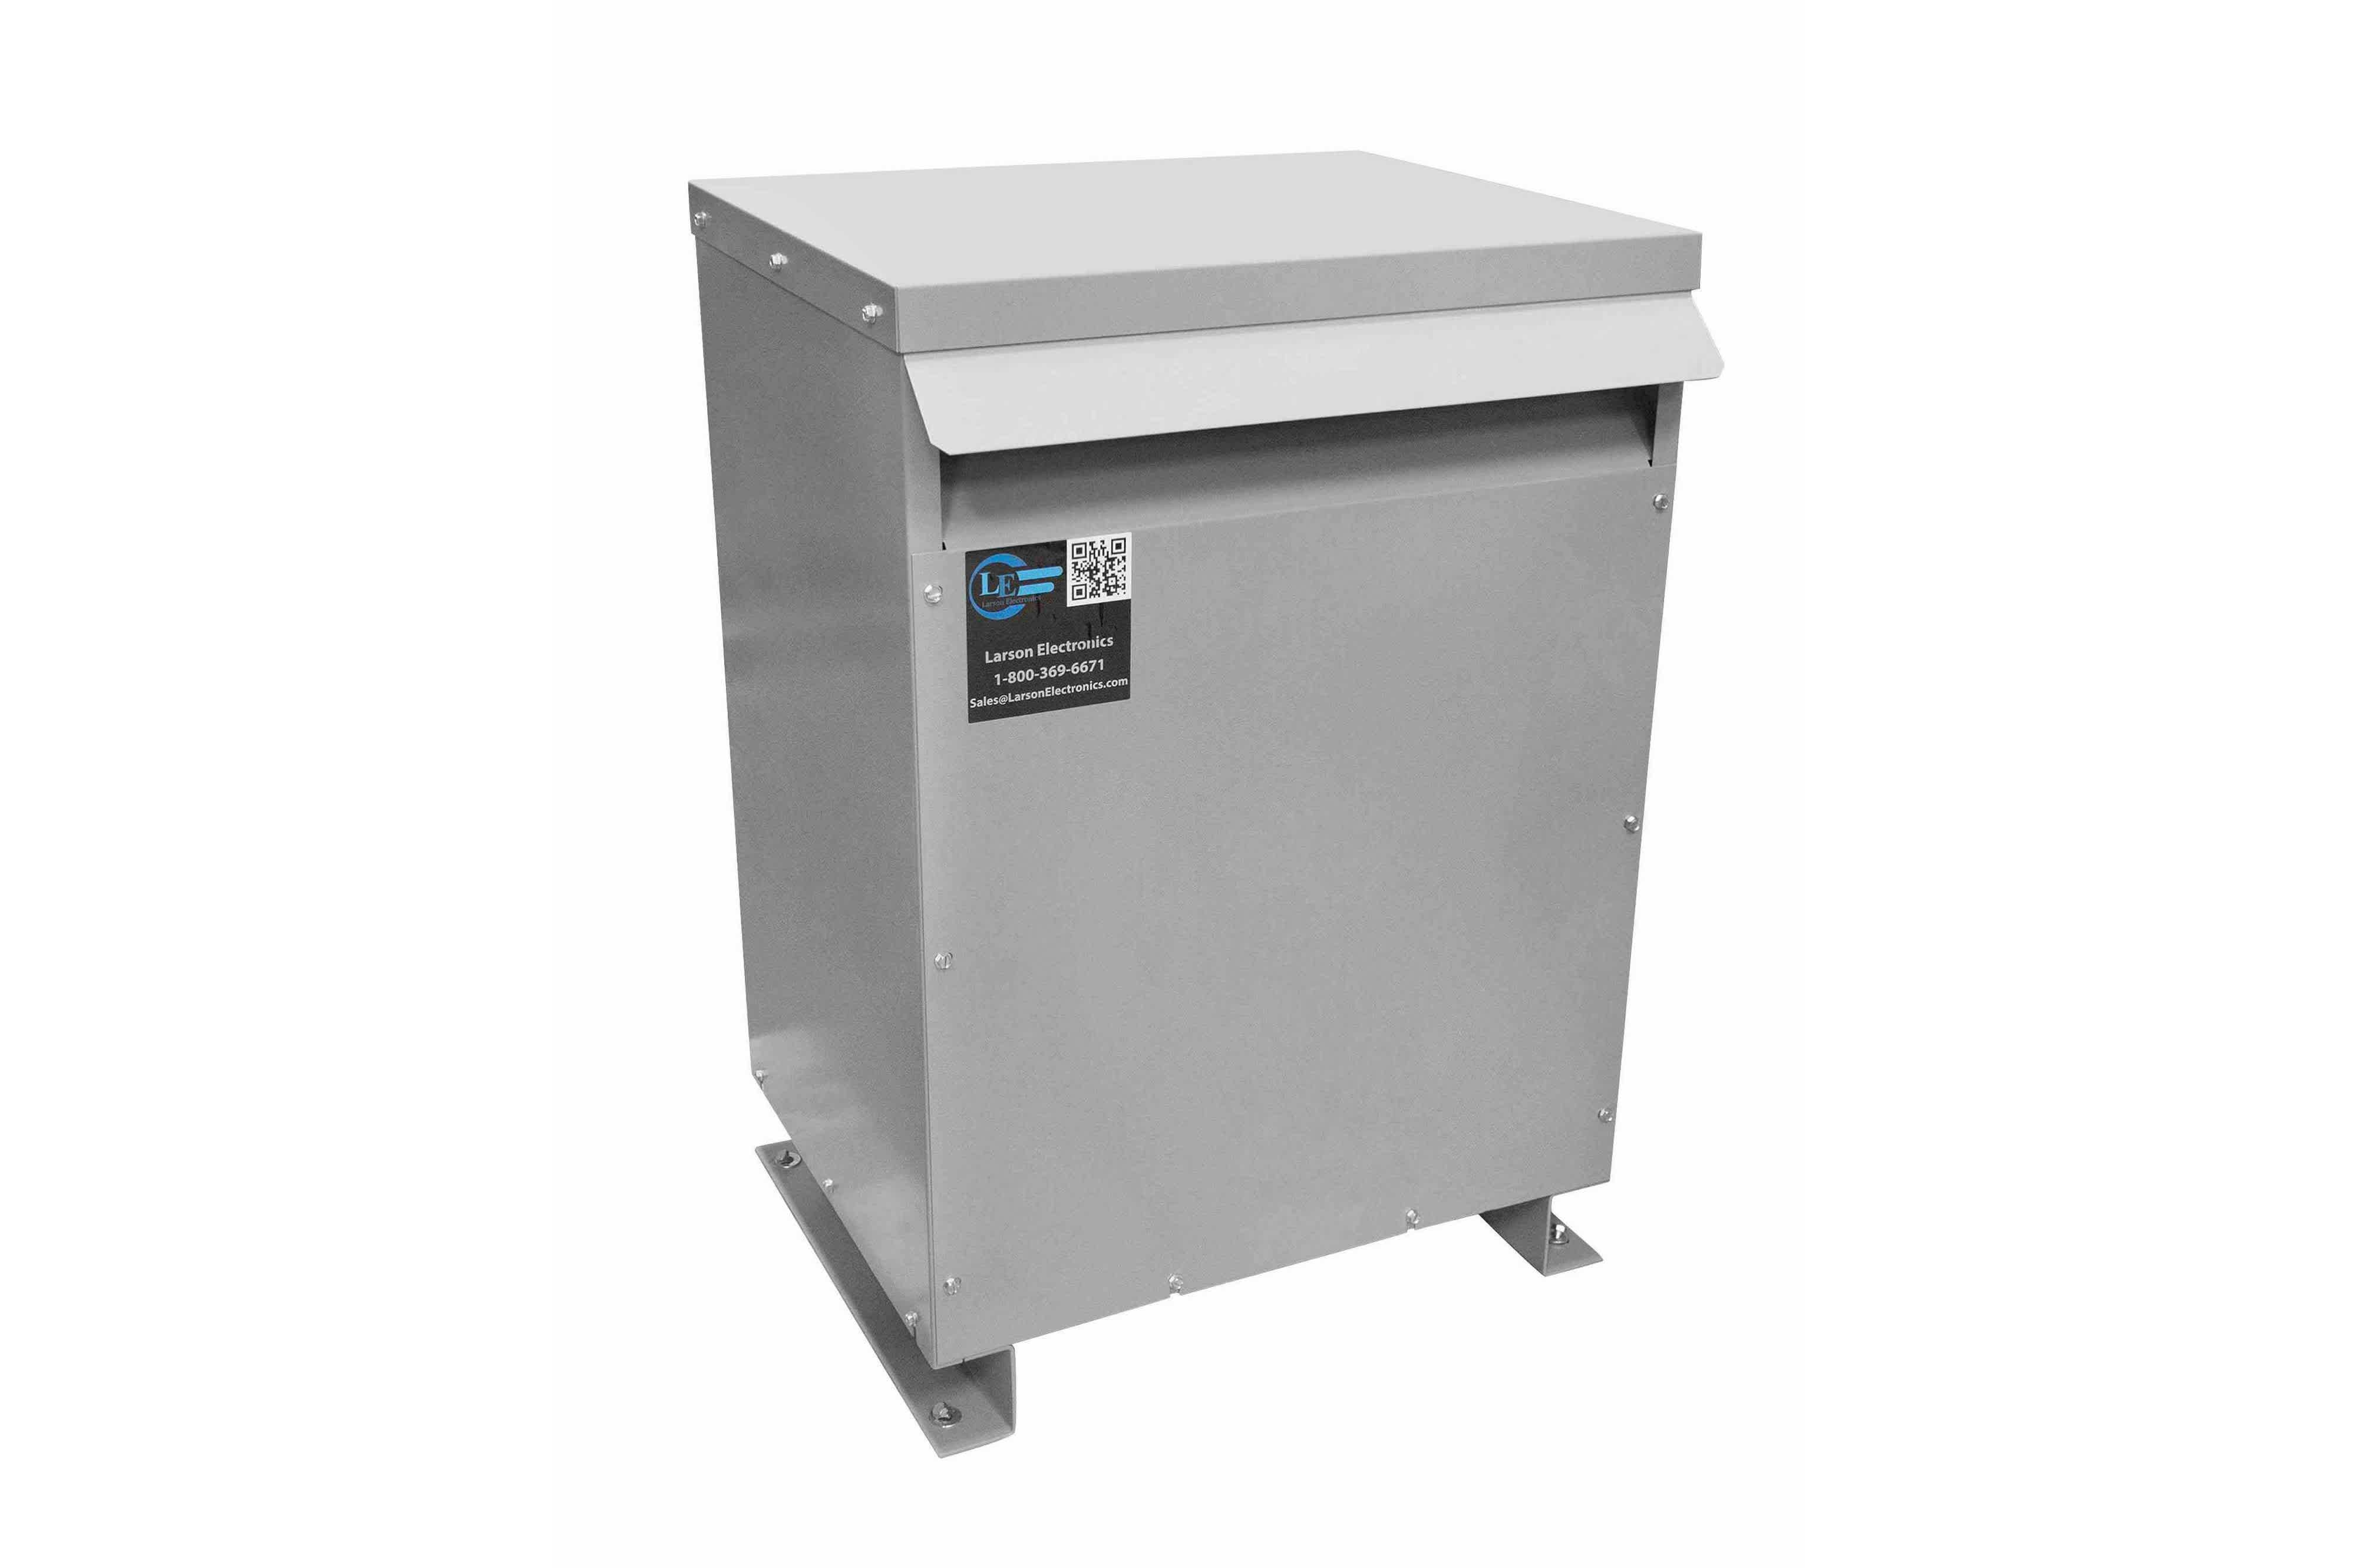 40 kVA 3PH Isolation Transformer, 380V Wye Primary, 240V Delta Secondary, N3R, Ventilated, 60 Hz